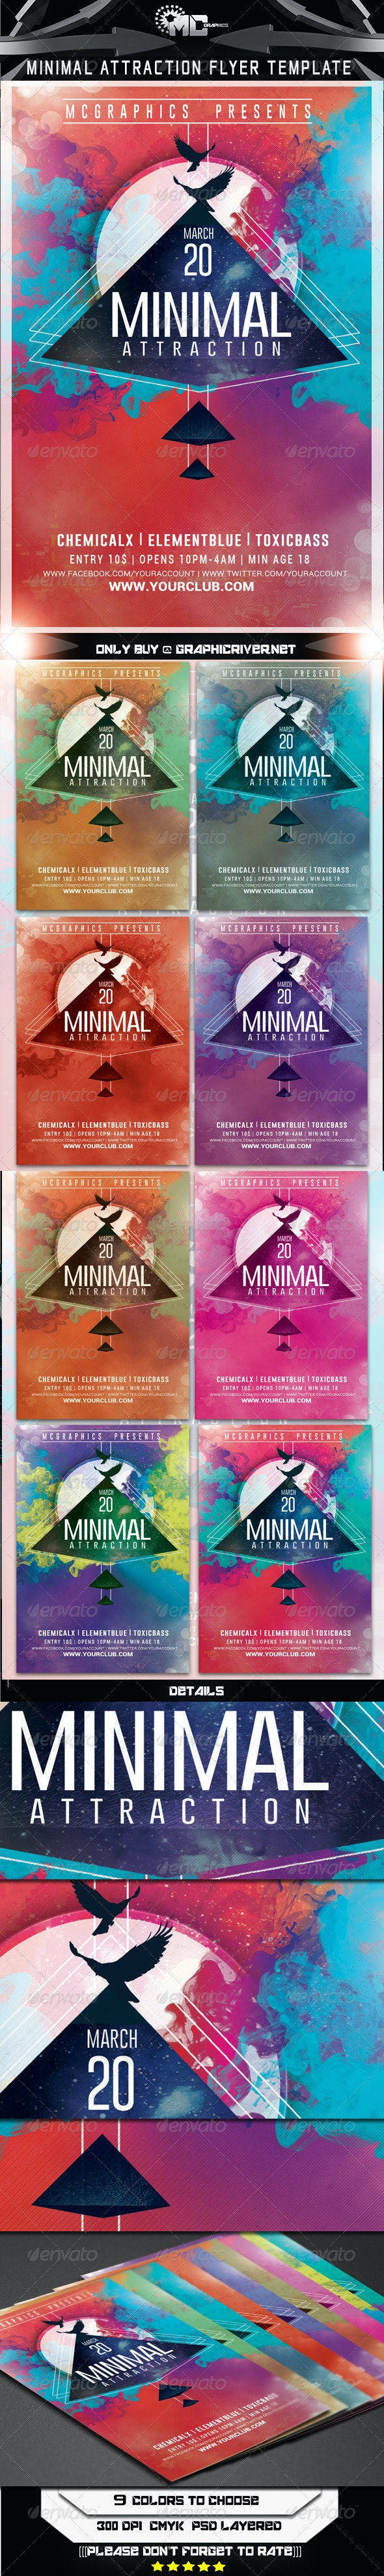 Minimal Attraction Flyer Template - Flyers Print Templates